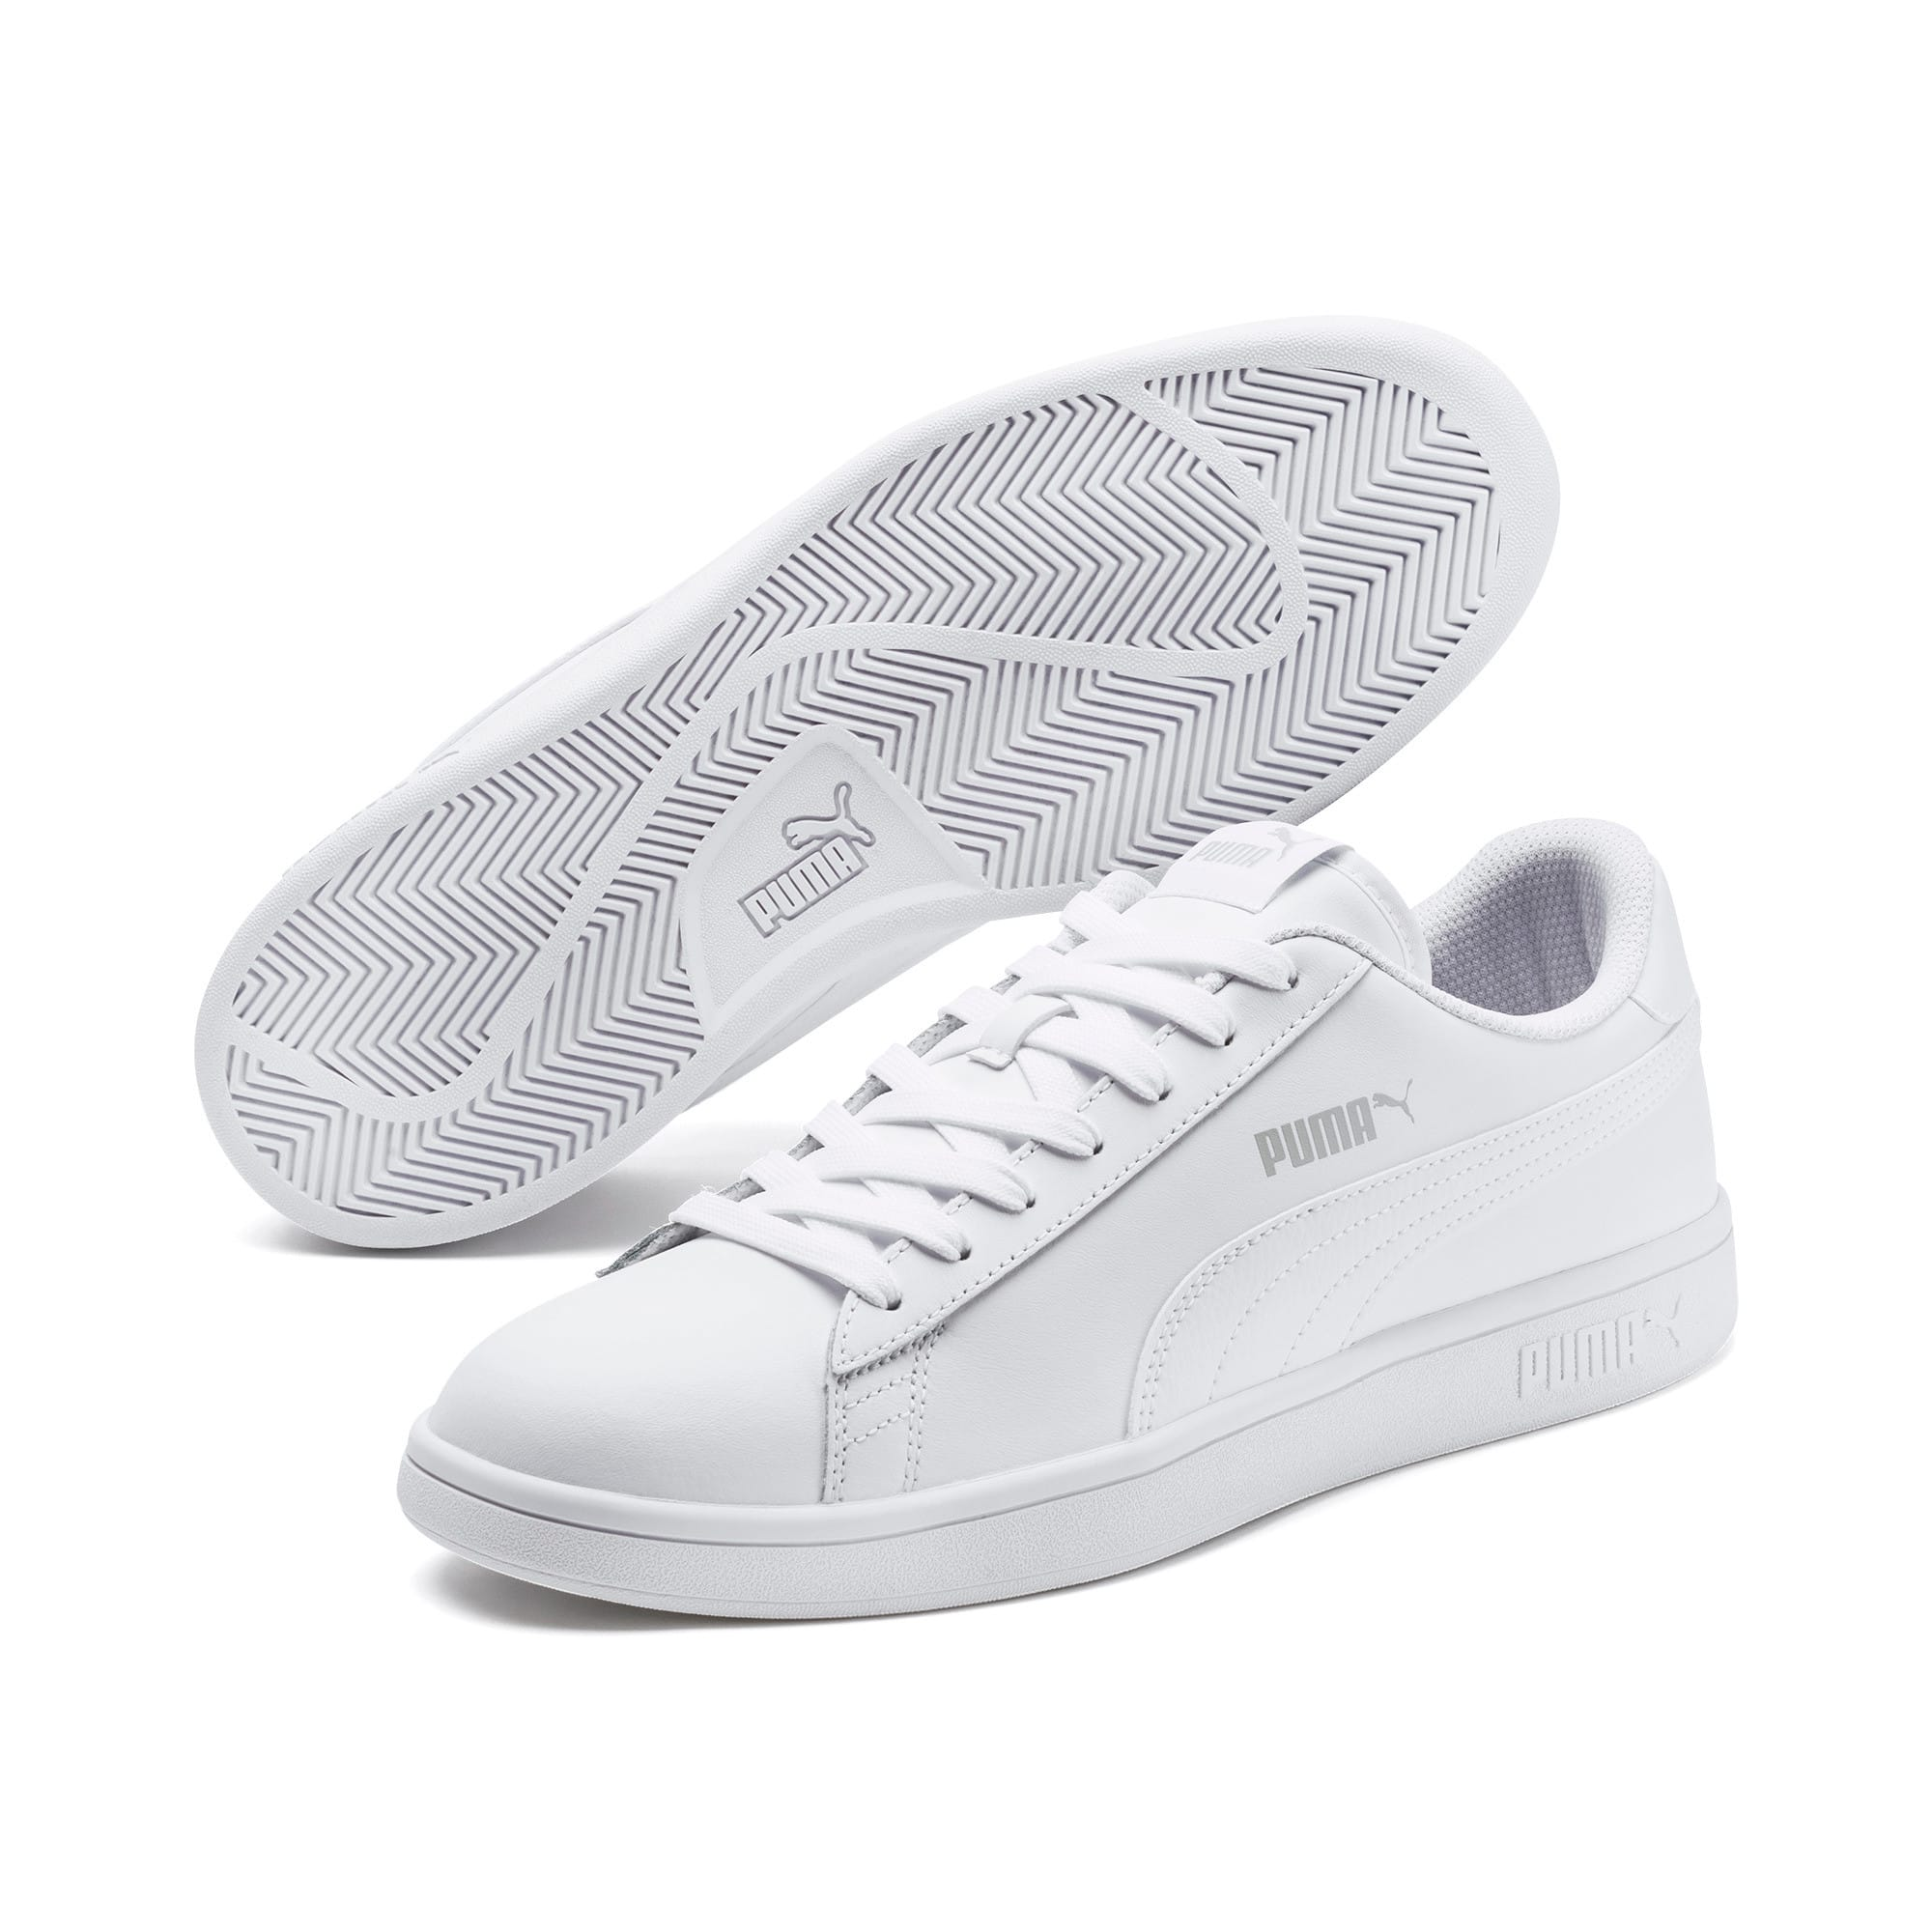 Thumbnail 2 of Puma Smash v2 L, Puma White-Puma White, medium